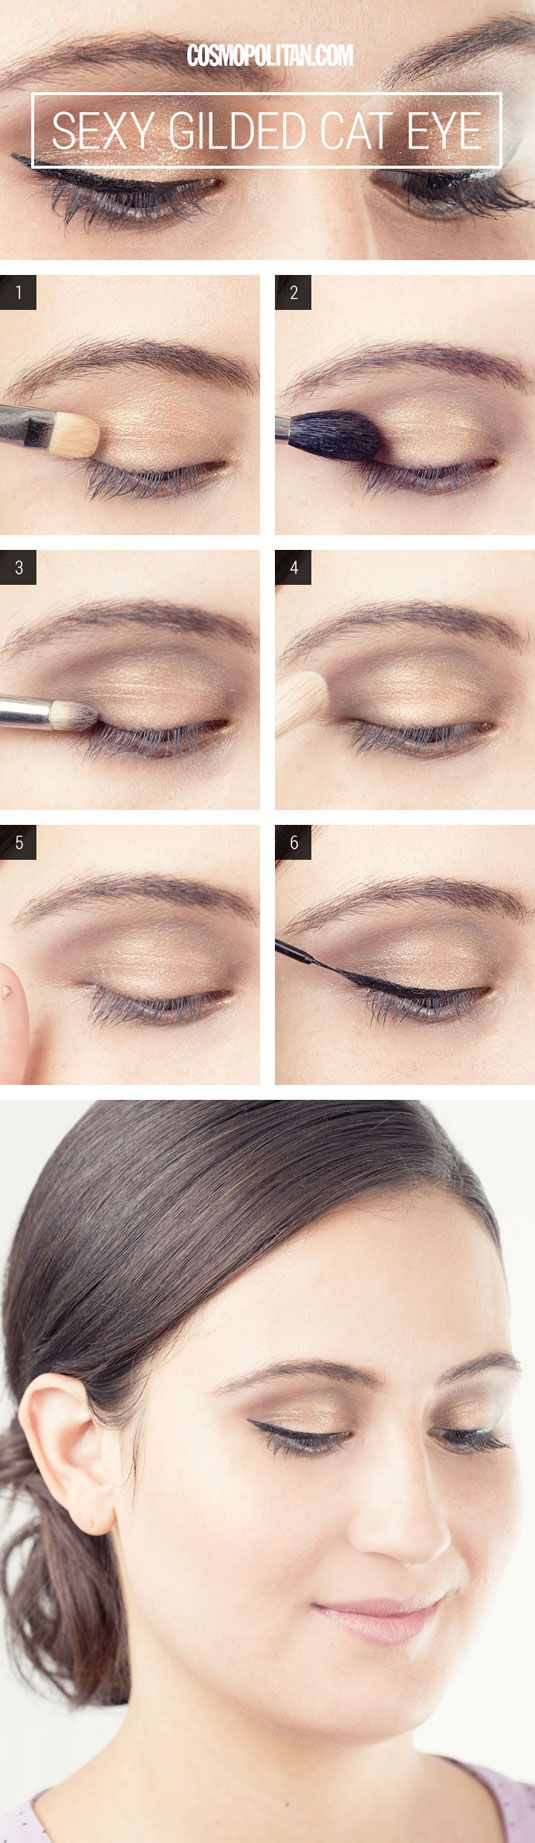 How to apply makeup sexy eyes